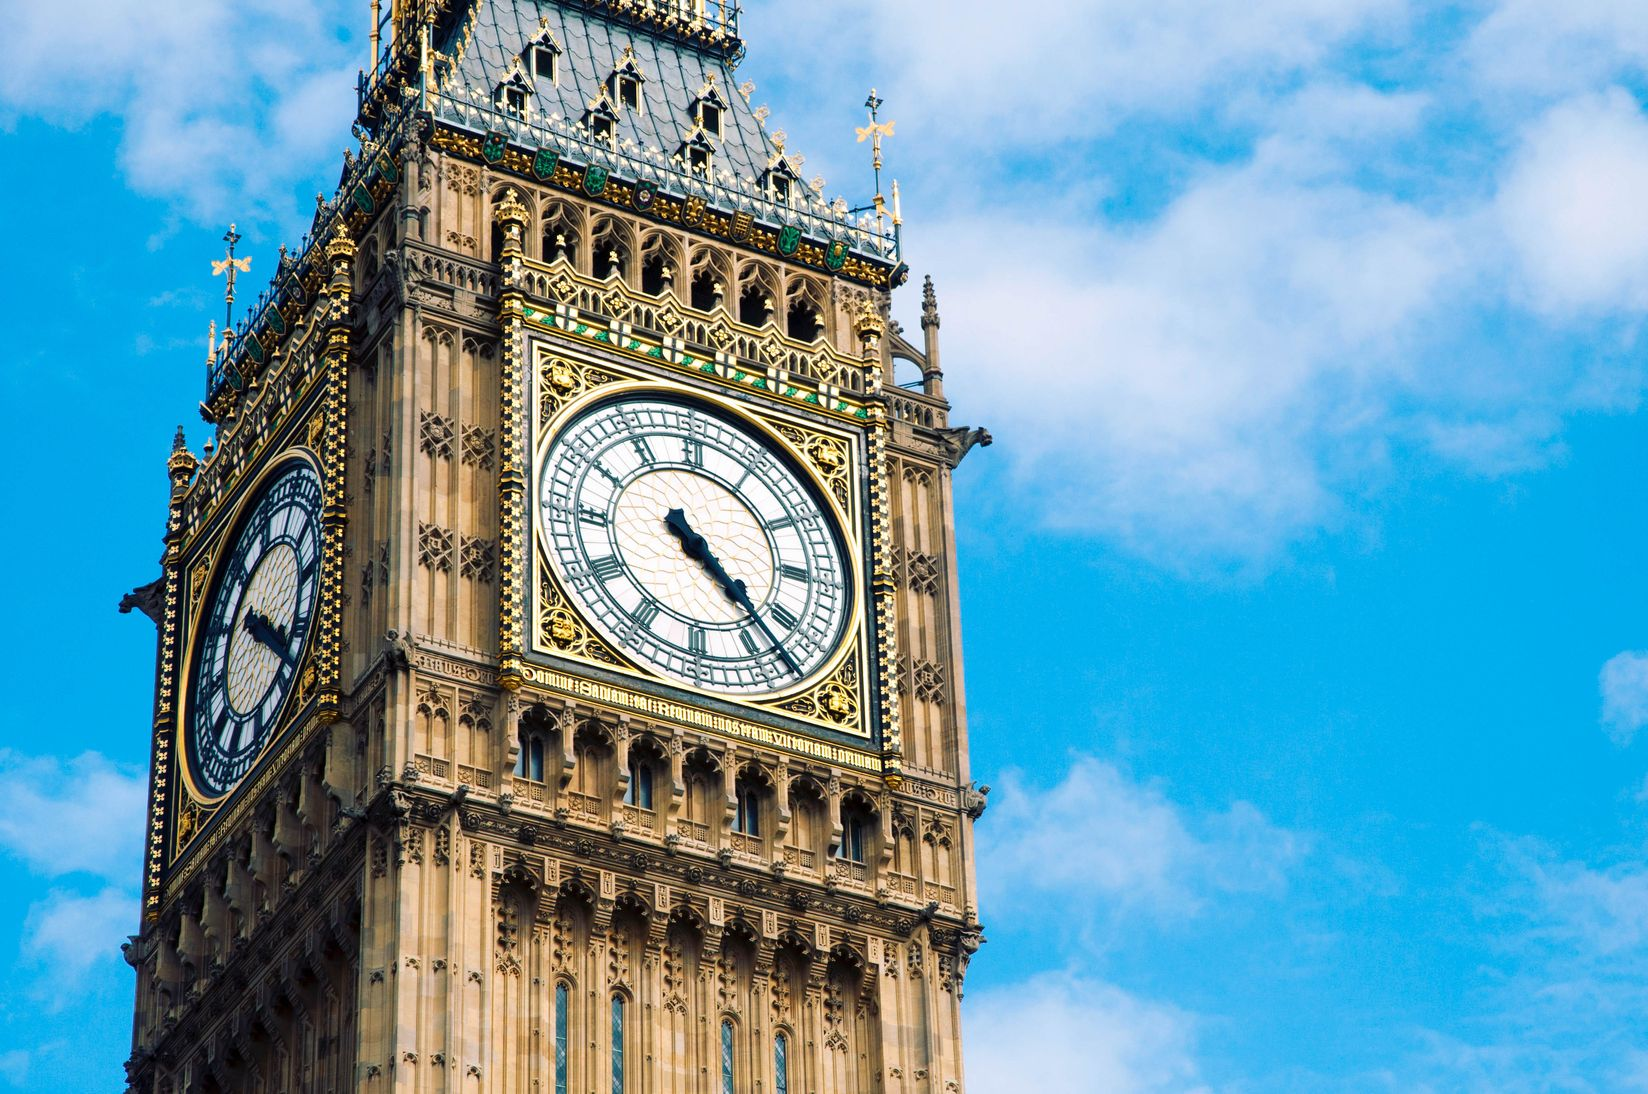 Photo of the Big Ben amidst a backdrop of a blue sky, indicating that time management is a career skills you learn from traveling